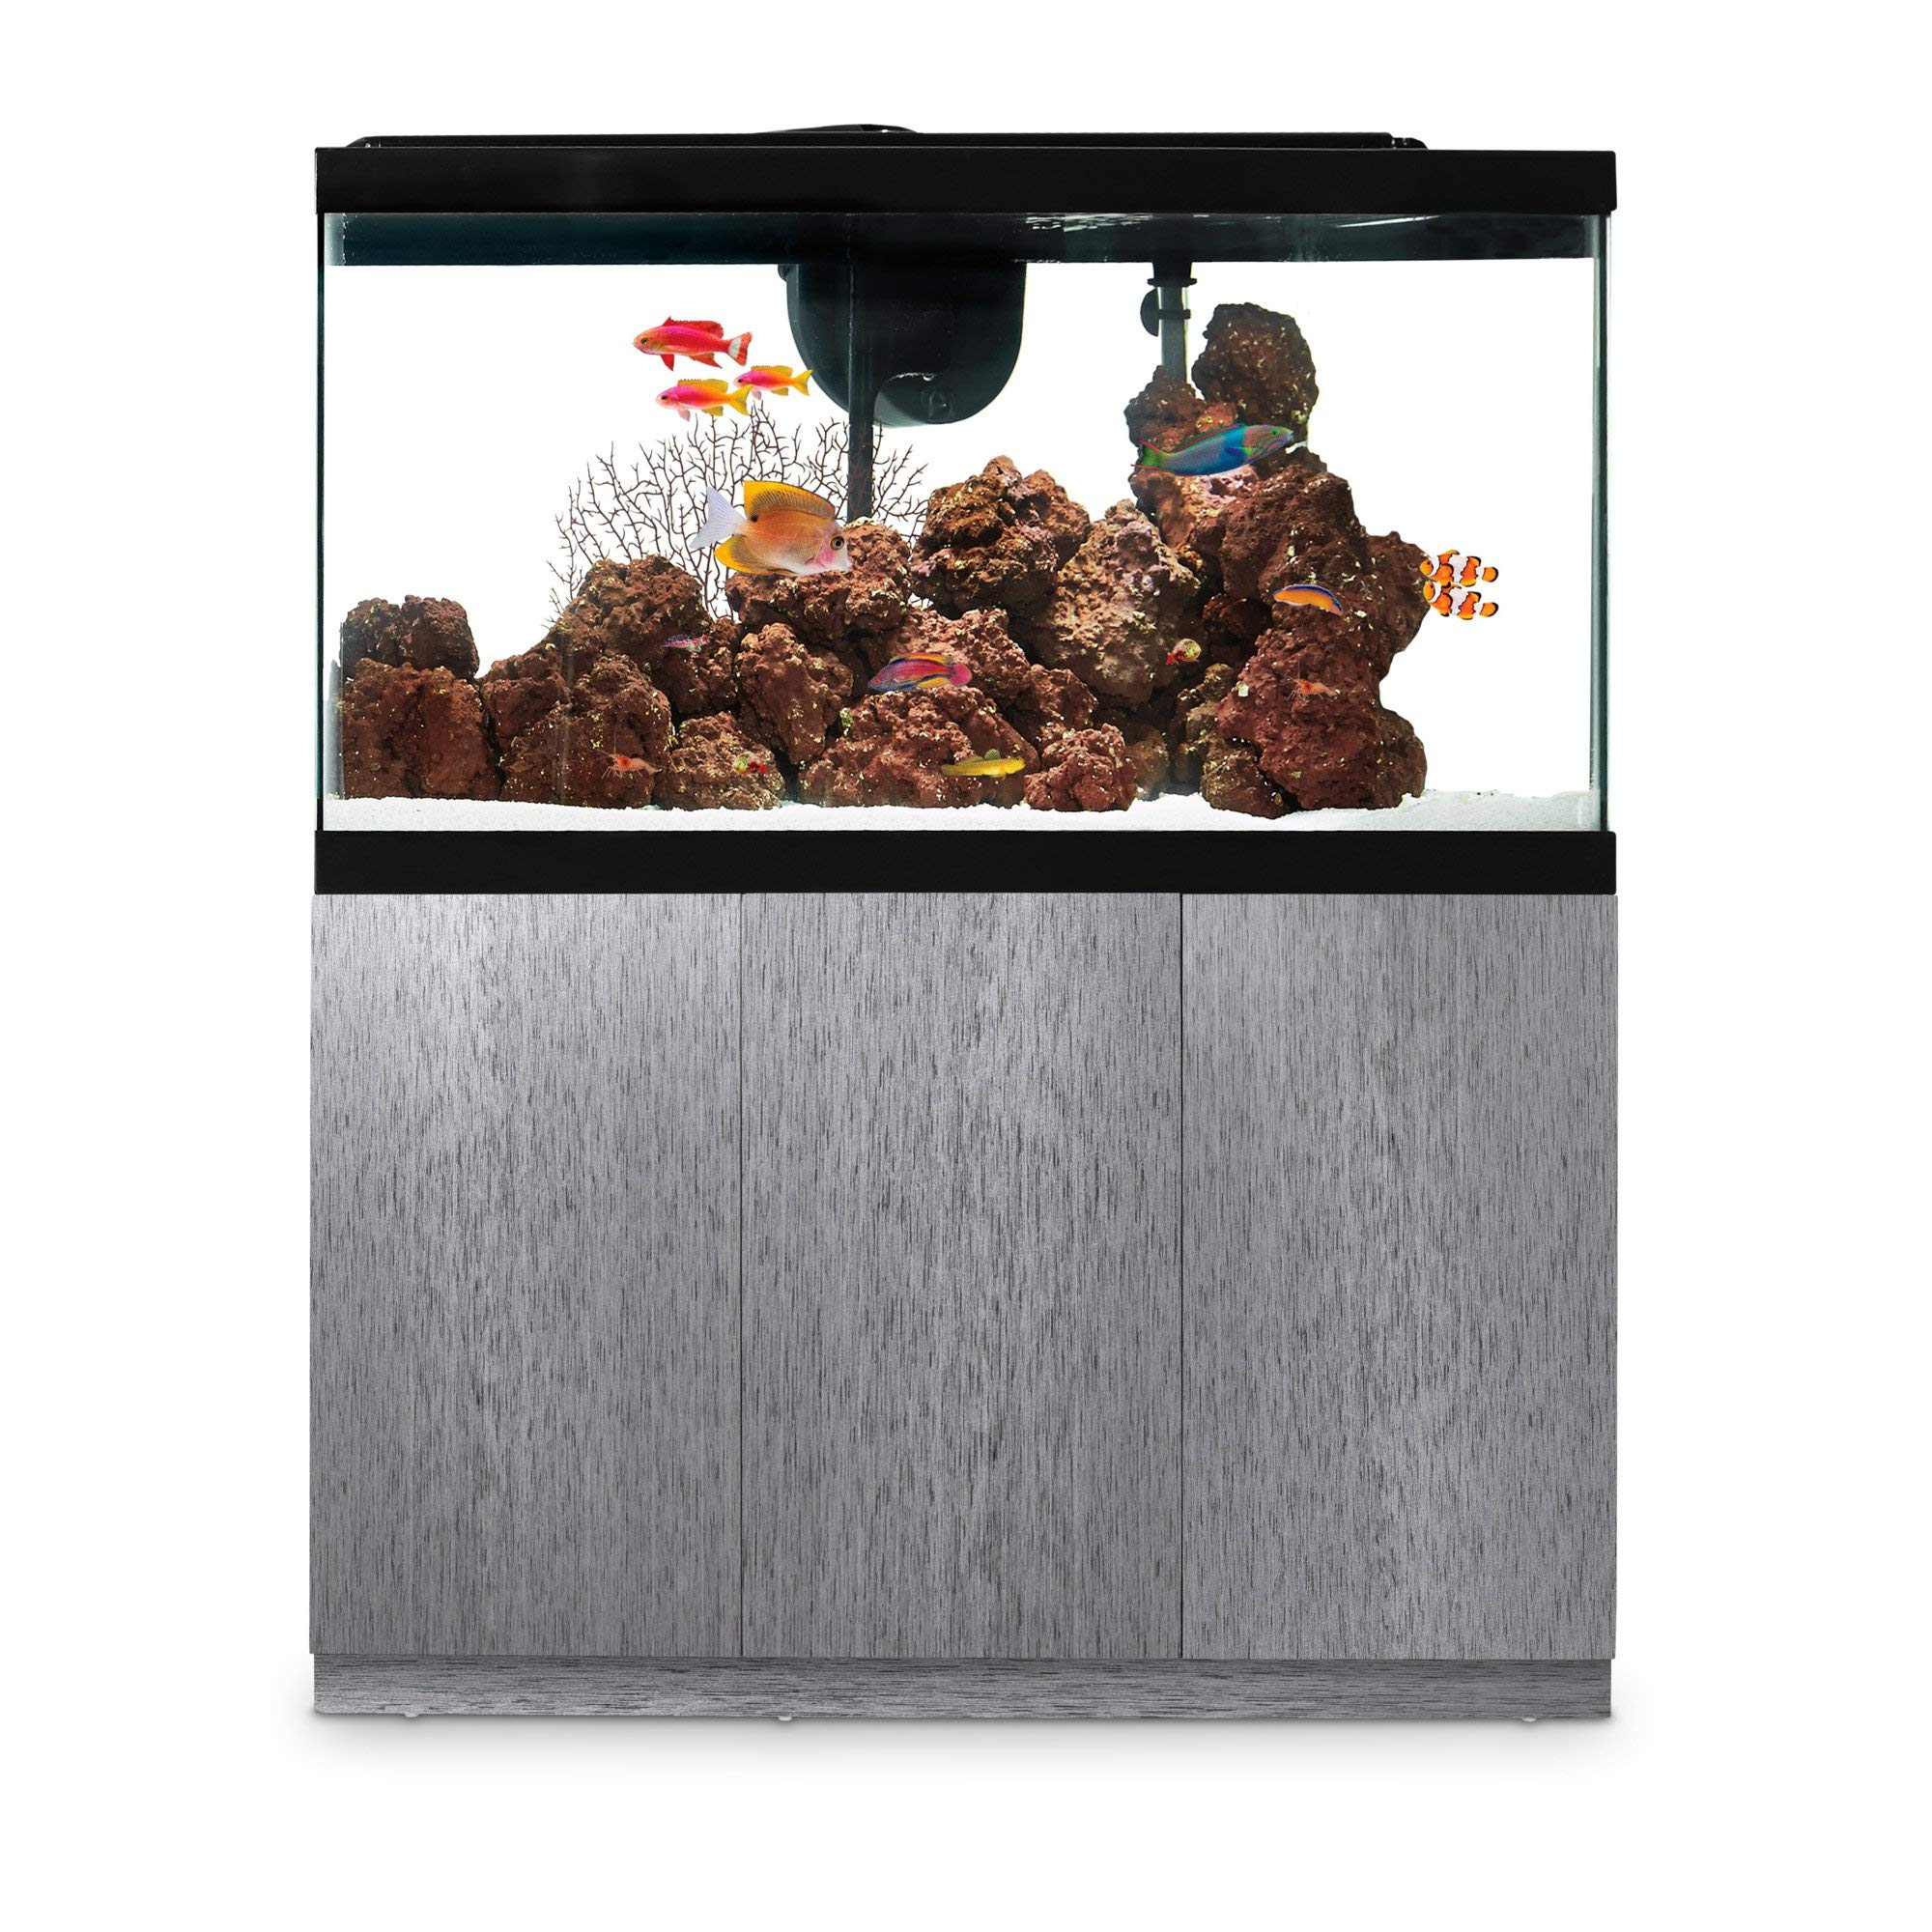 Imagitarium Brushed Steel Look Fish Tank Stand, Up to 55 Gal, 47.5 in by Imagitarium